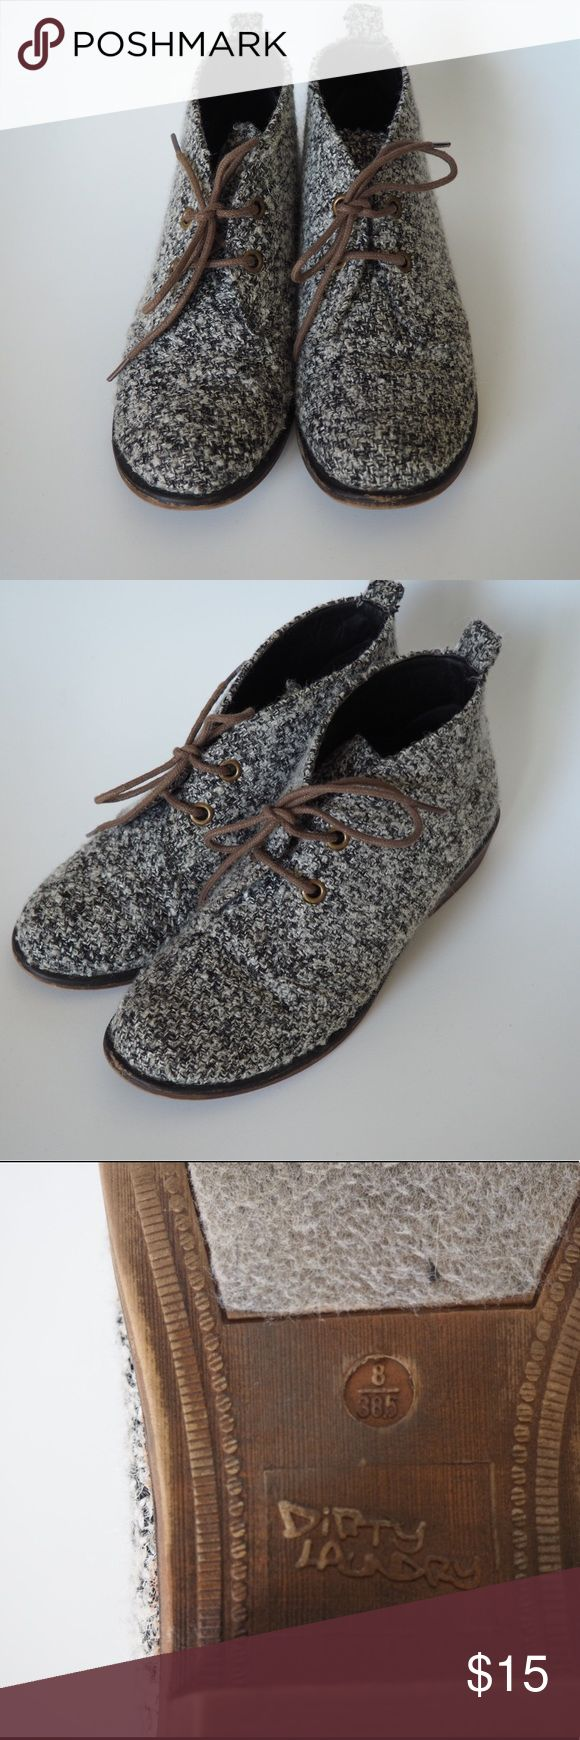 Dirty Laundry Tweed Keegan Booties Black and white booties that are super comfortable! Size 8 dirty laundry Shoes Ankle Boots & Booties